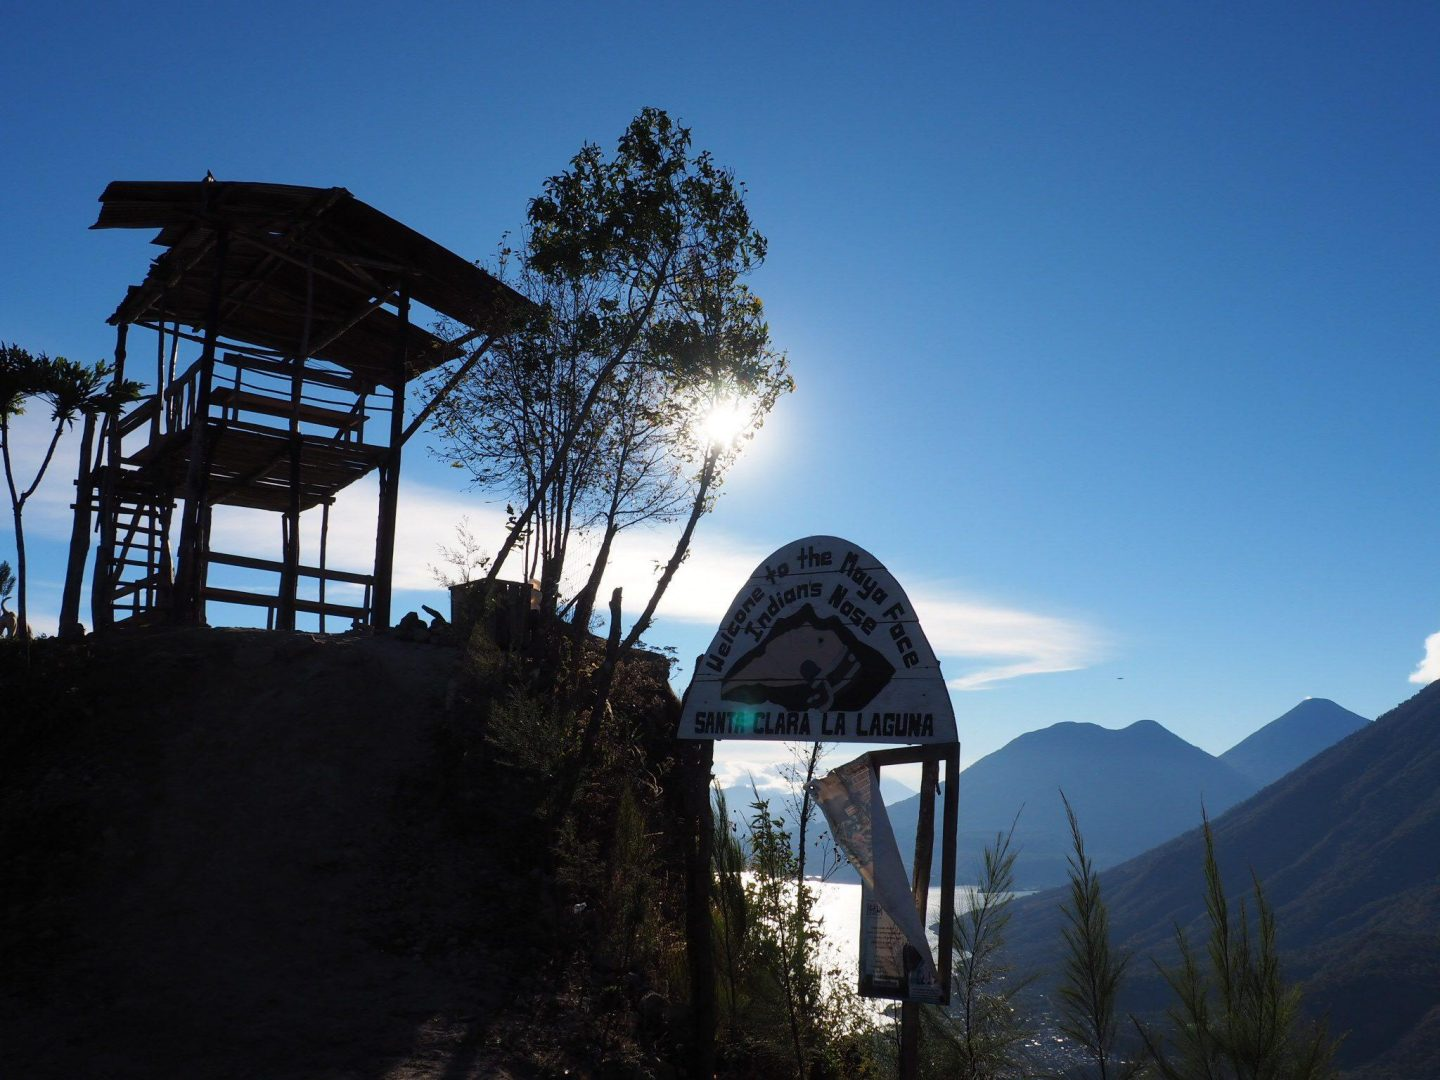 Indian Nose Hike in Guatemala